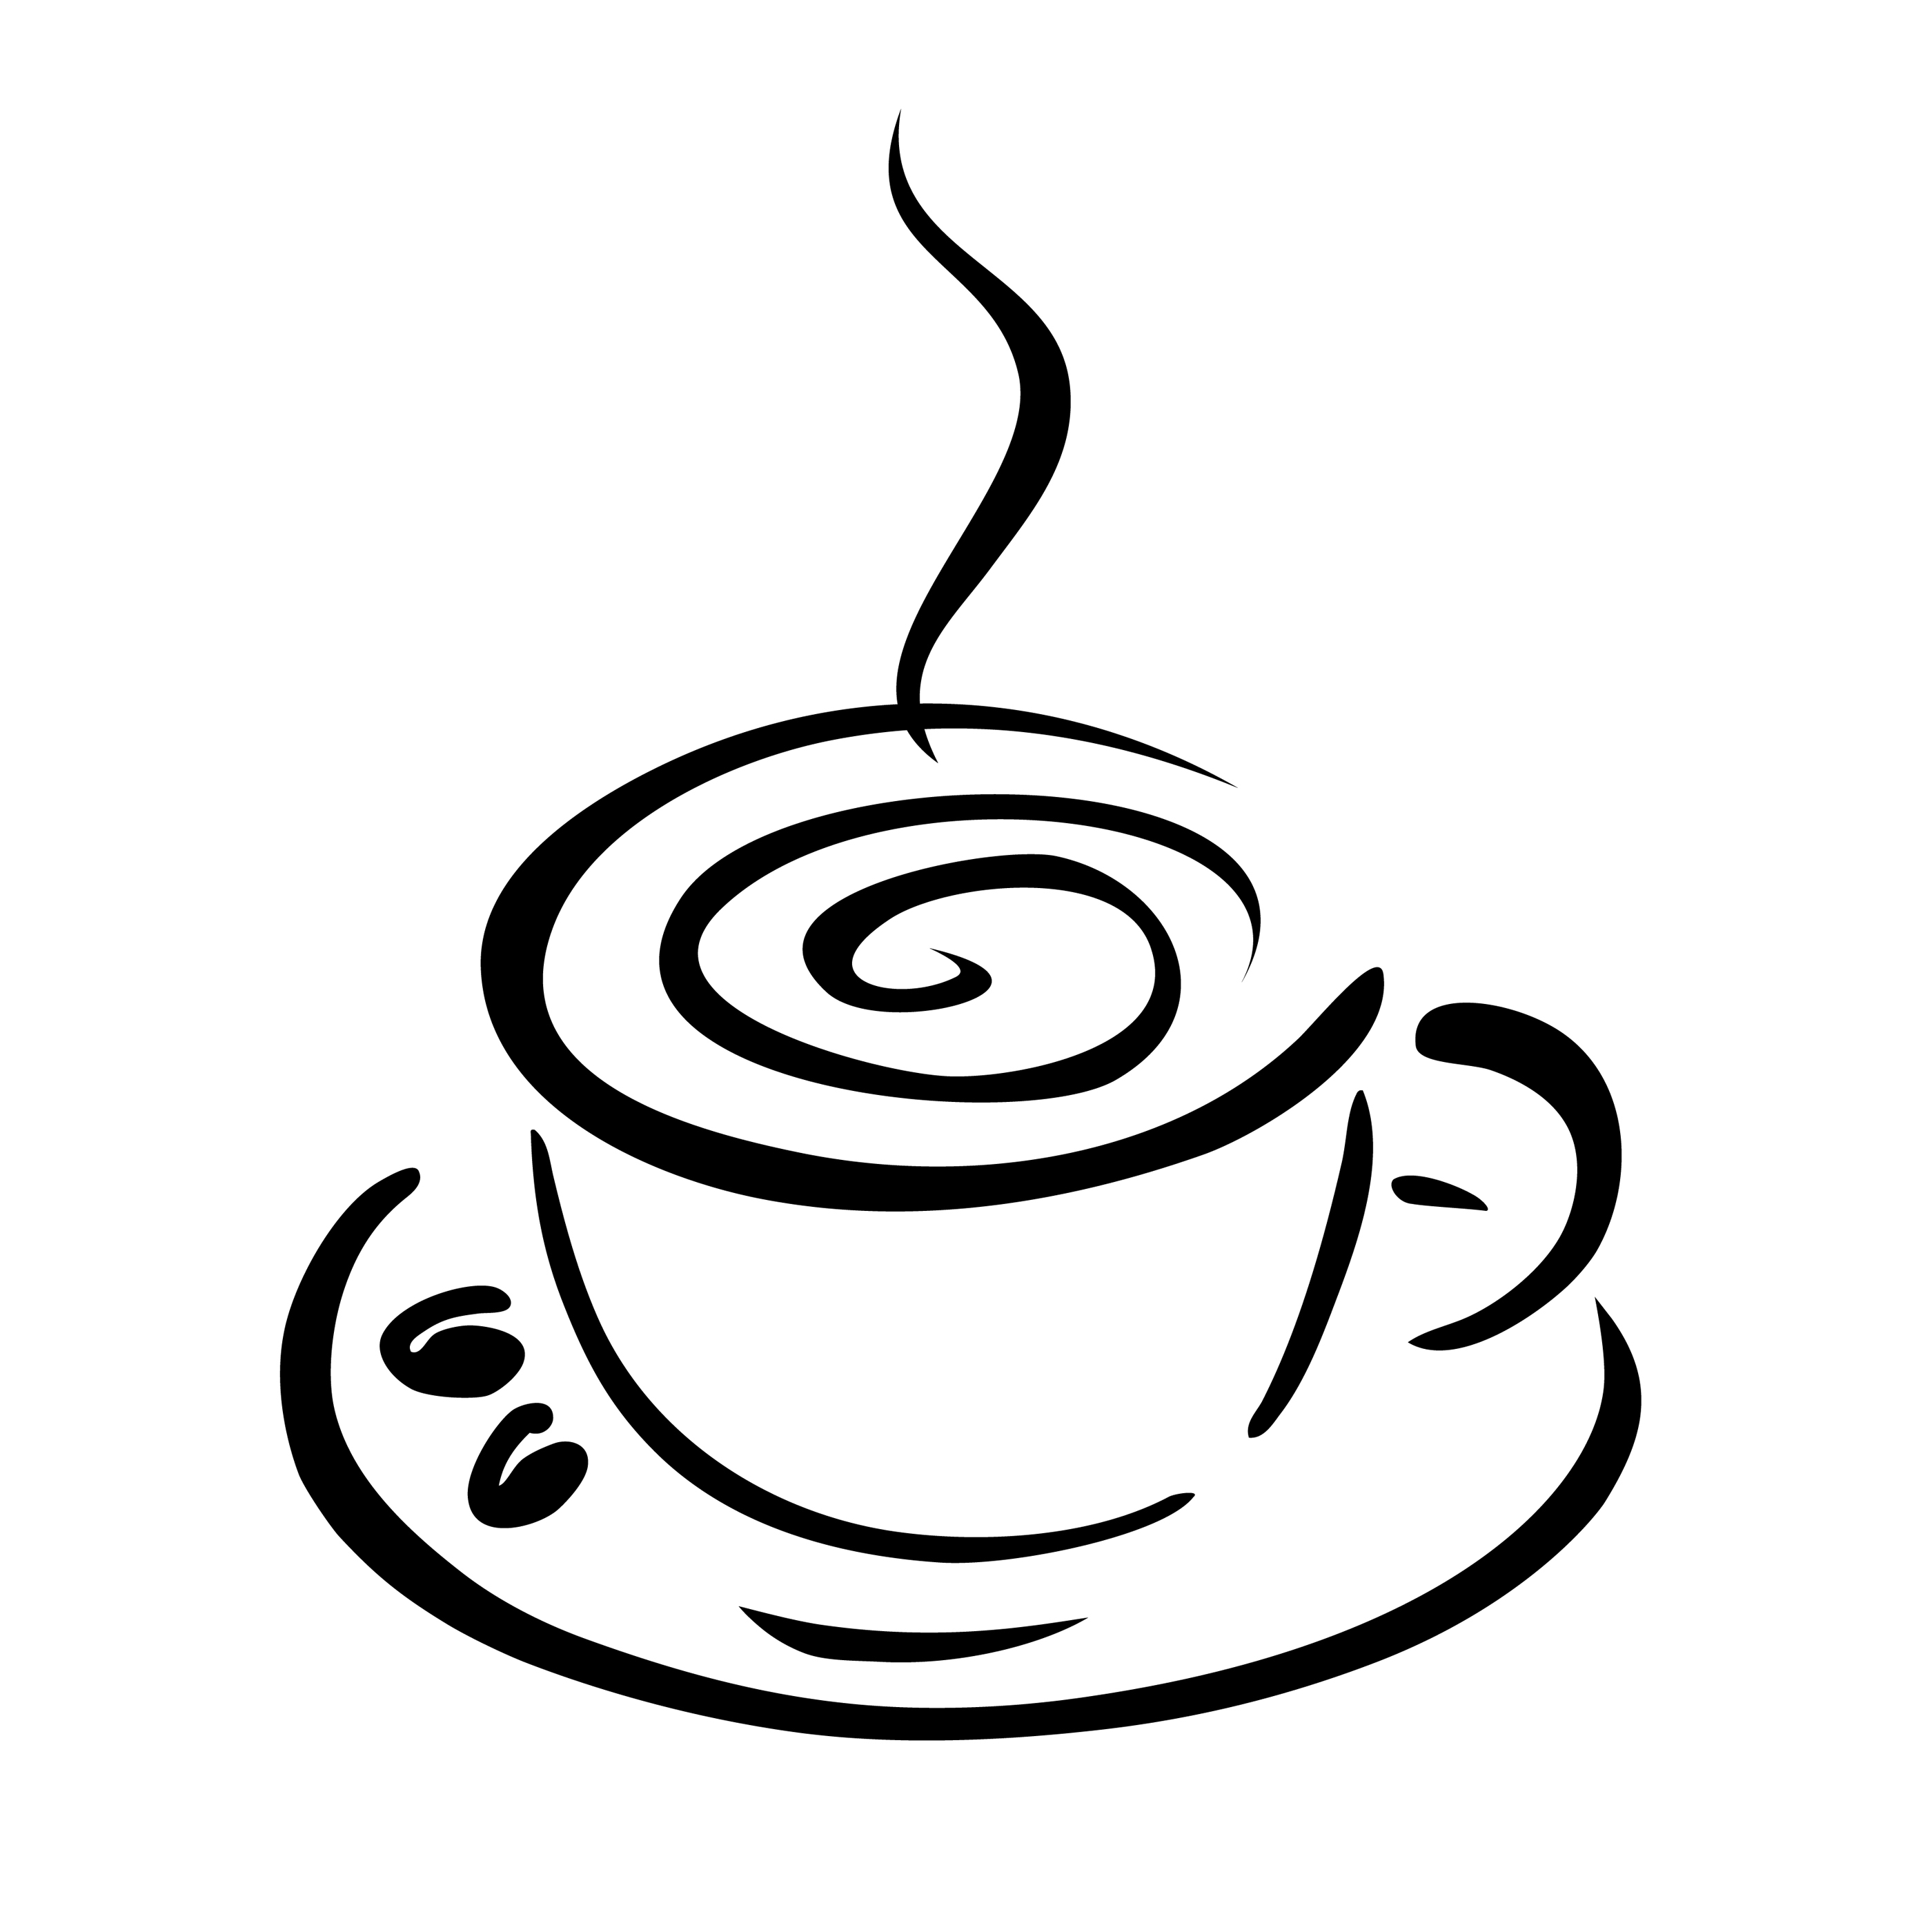 banner royalty free download Free cliparts download clip. Vector coffee black and white